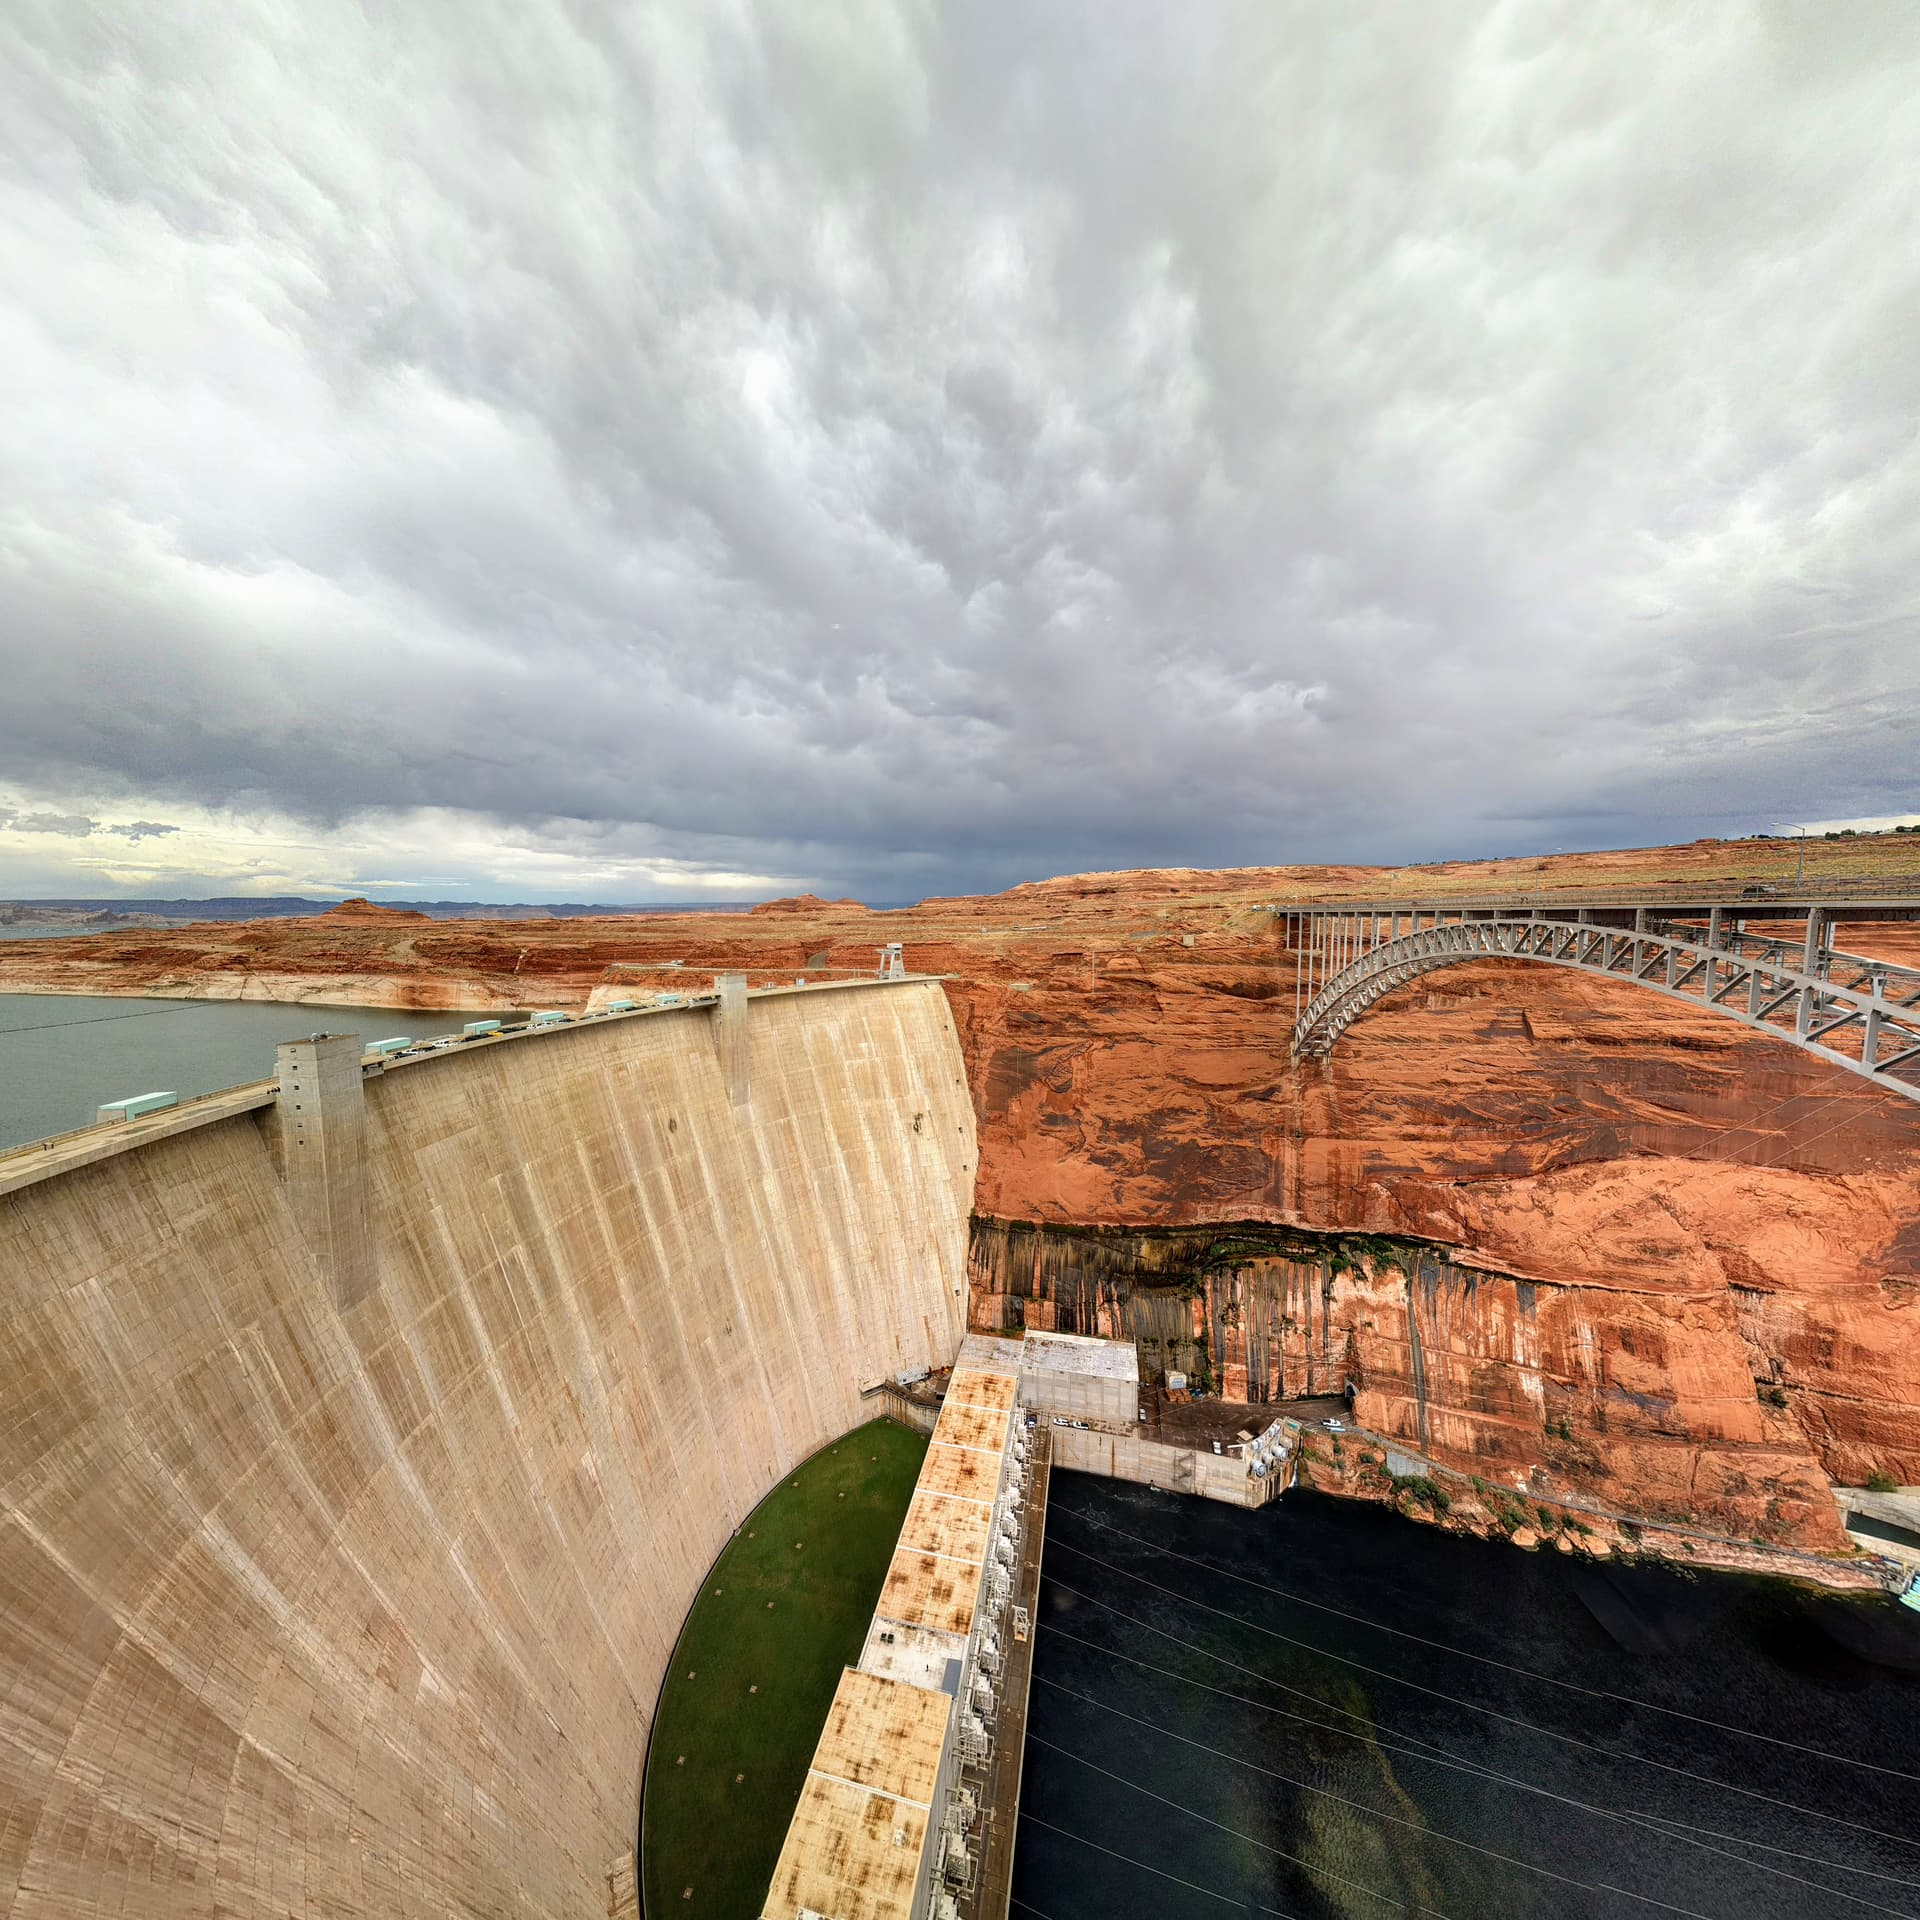 A wide-angle shot of the Glen Canyon Dam (left) and Glen Canyon Dam Bridge (right), with the Colorado River below.